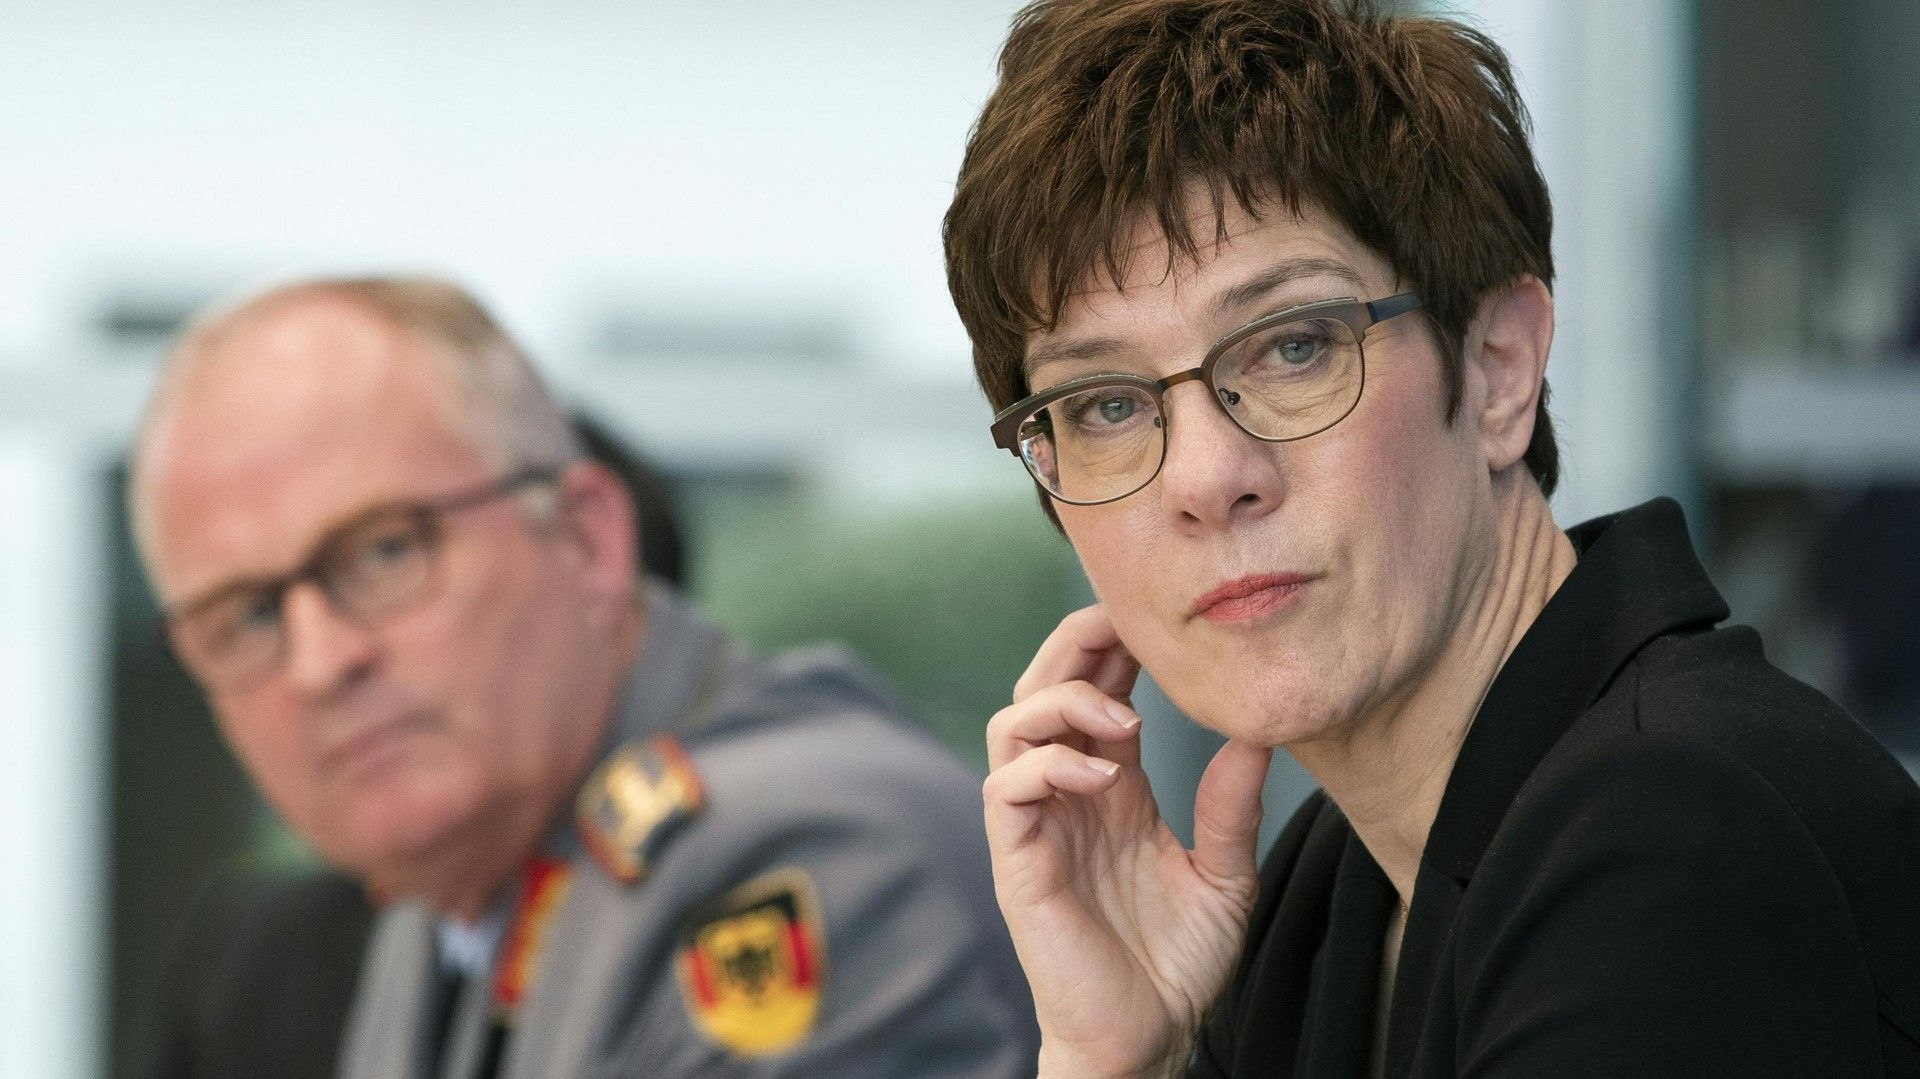 annegret_kramp_karrenbauer_afp